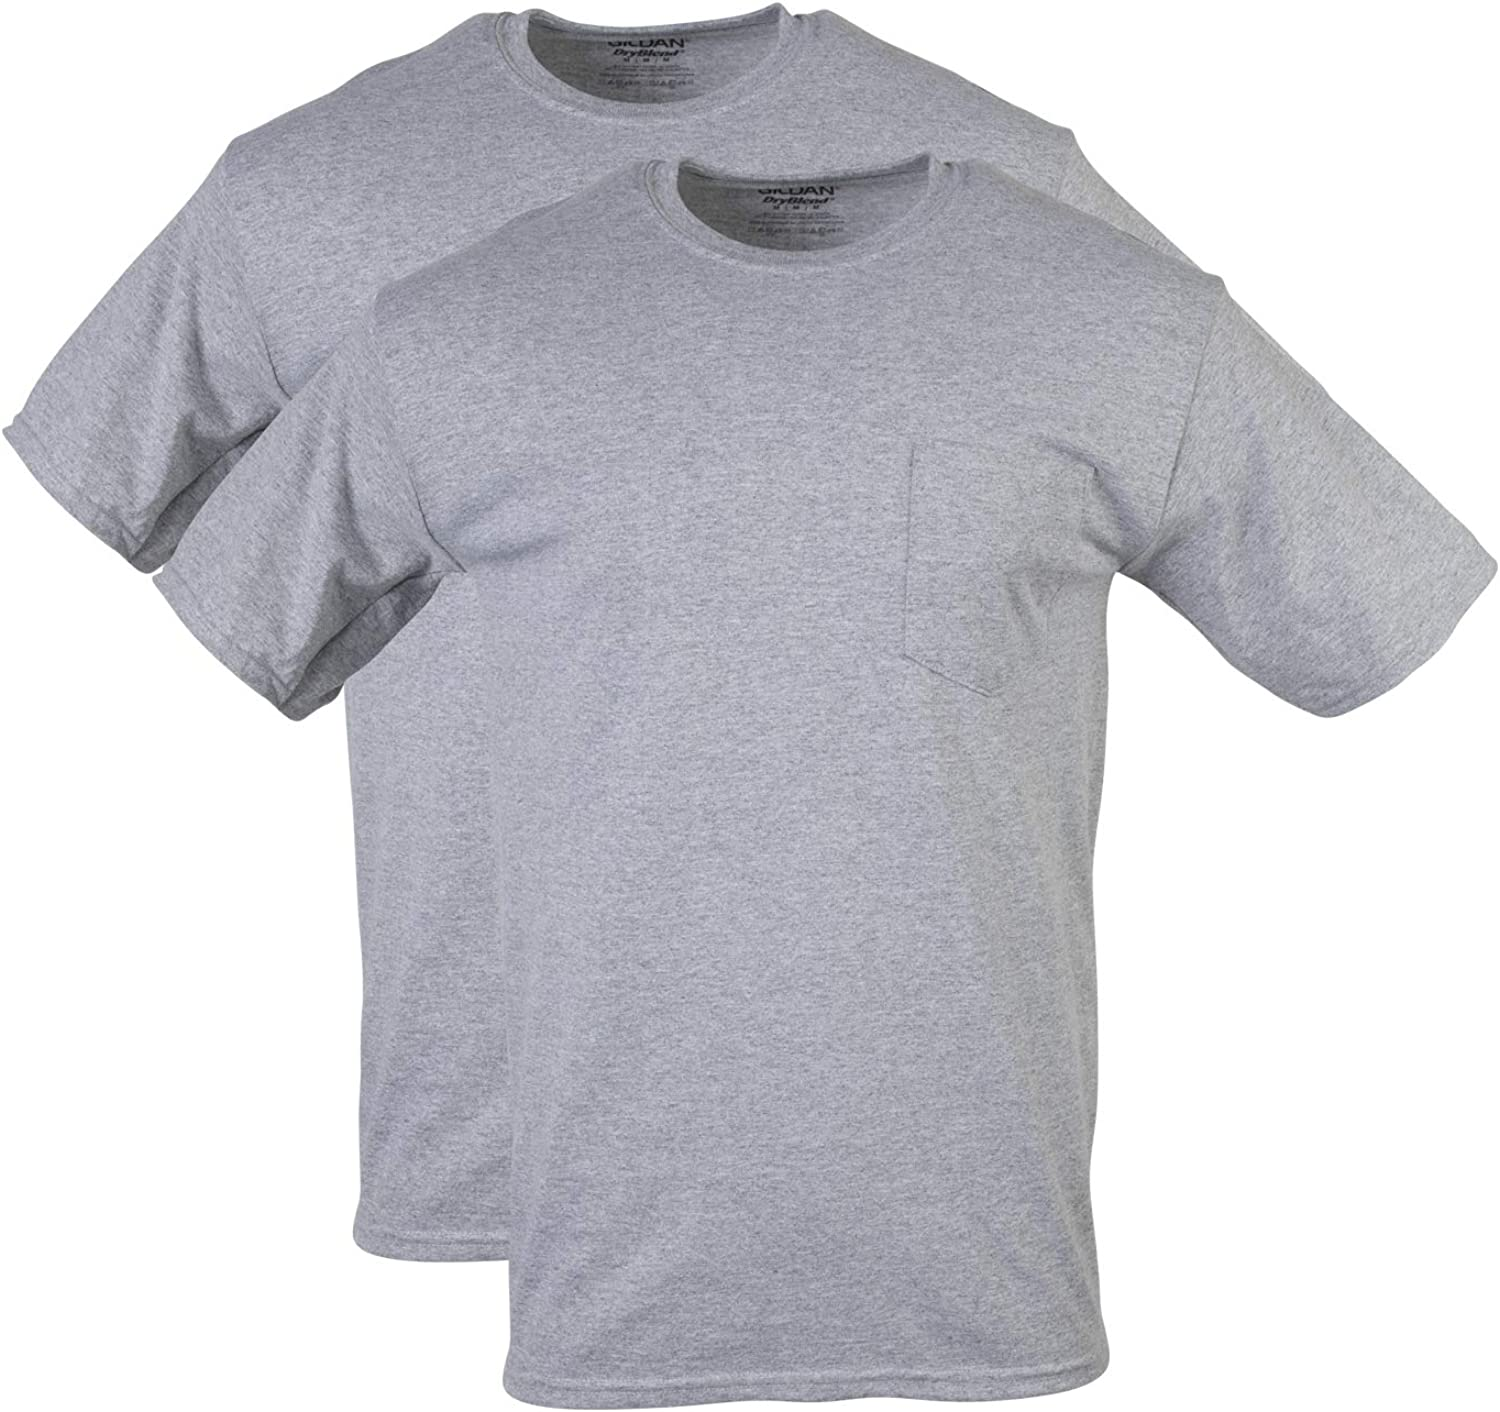 GILDAN Mens DryBlend Workwear T-Shirts with Pocket 2-Pack T-Shirt